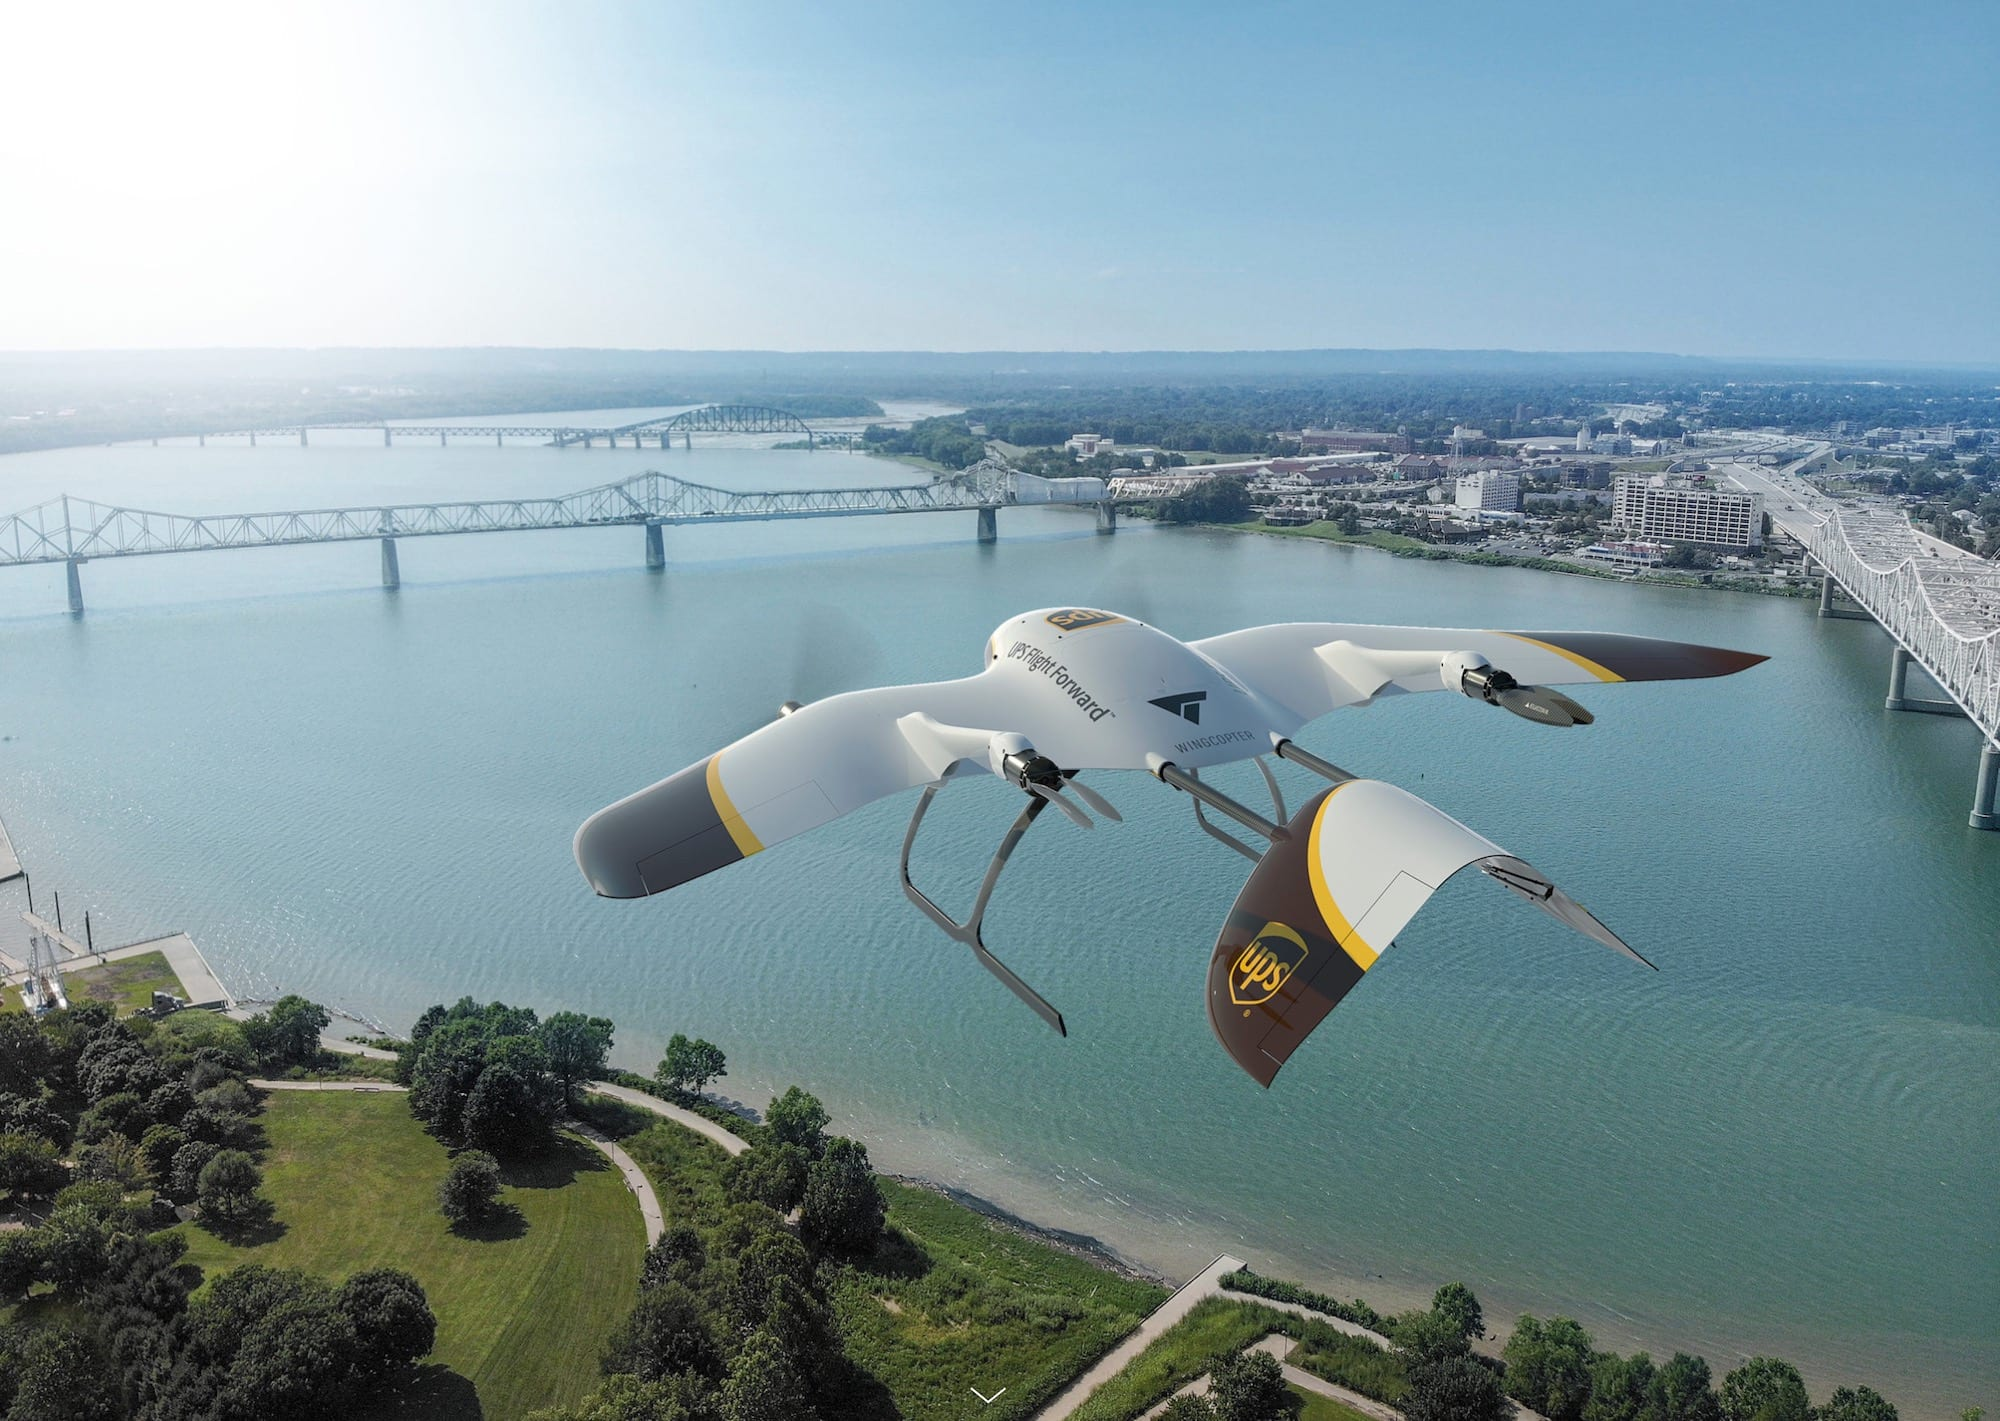 Wingcopter is a finalist in AUVSI XCELLENCE Awards 2020